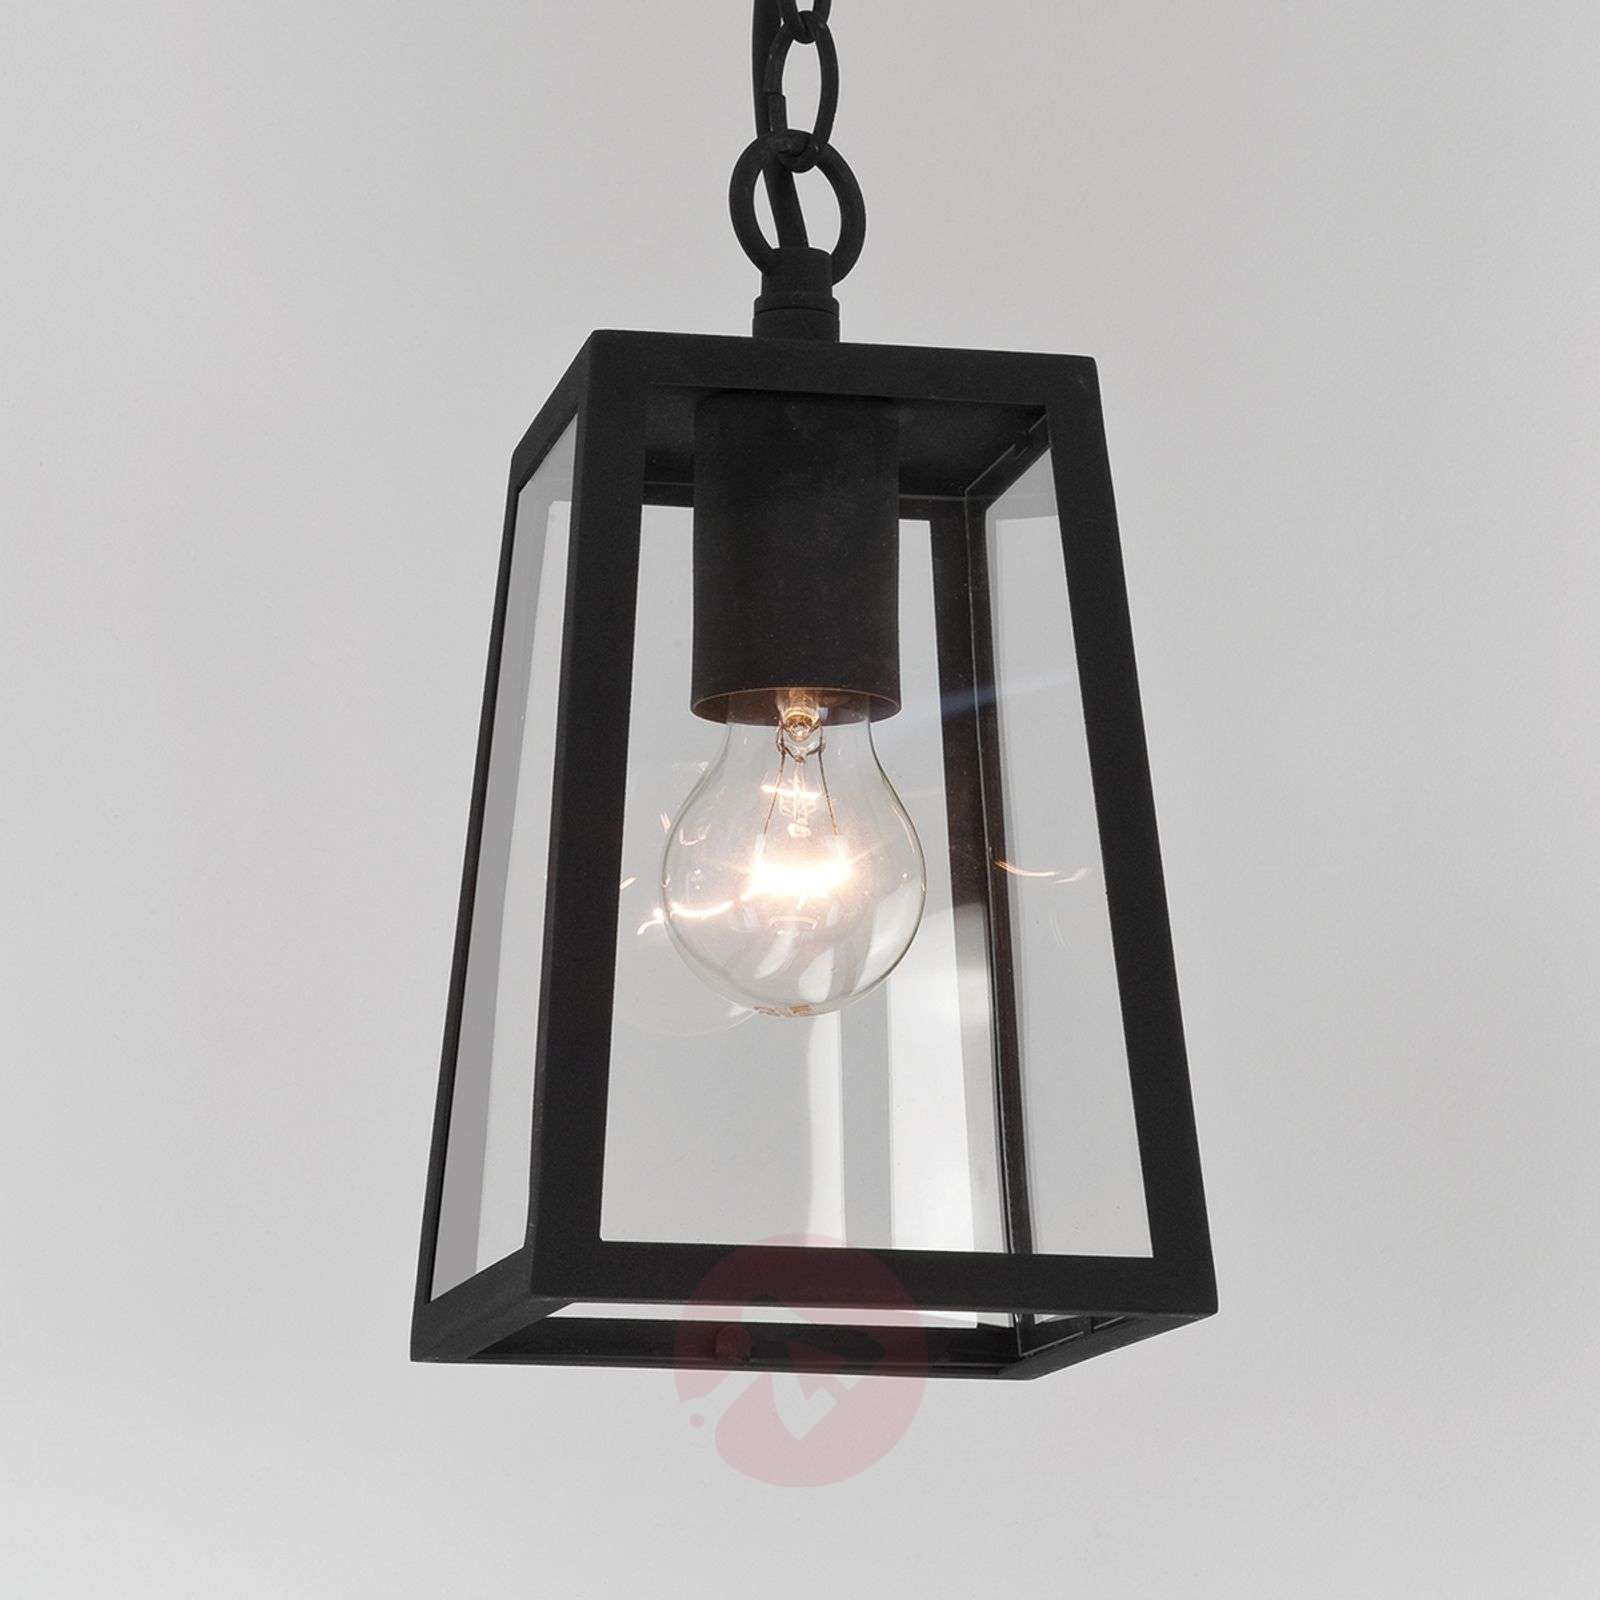 Calvi Hanging Light for Outside with Black Frame-1020483-08